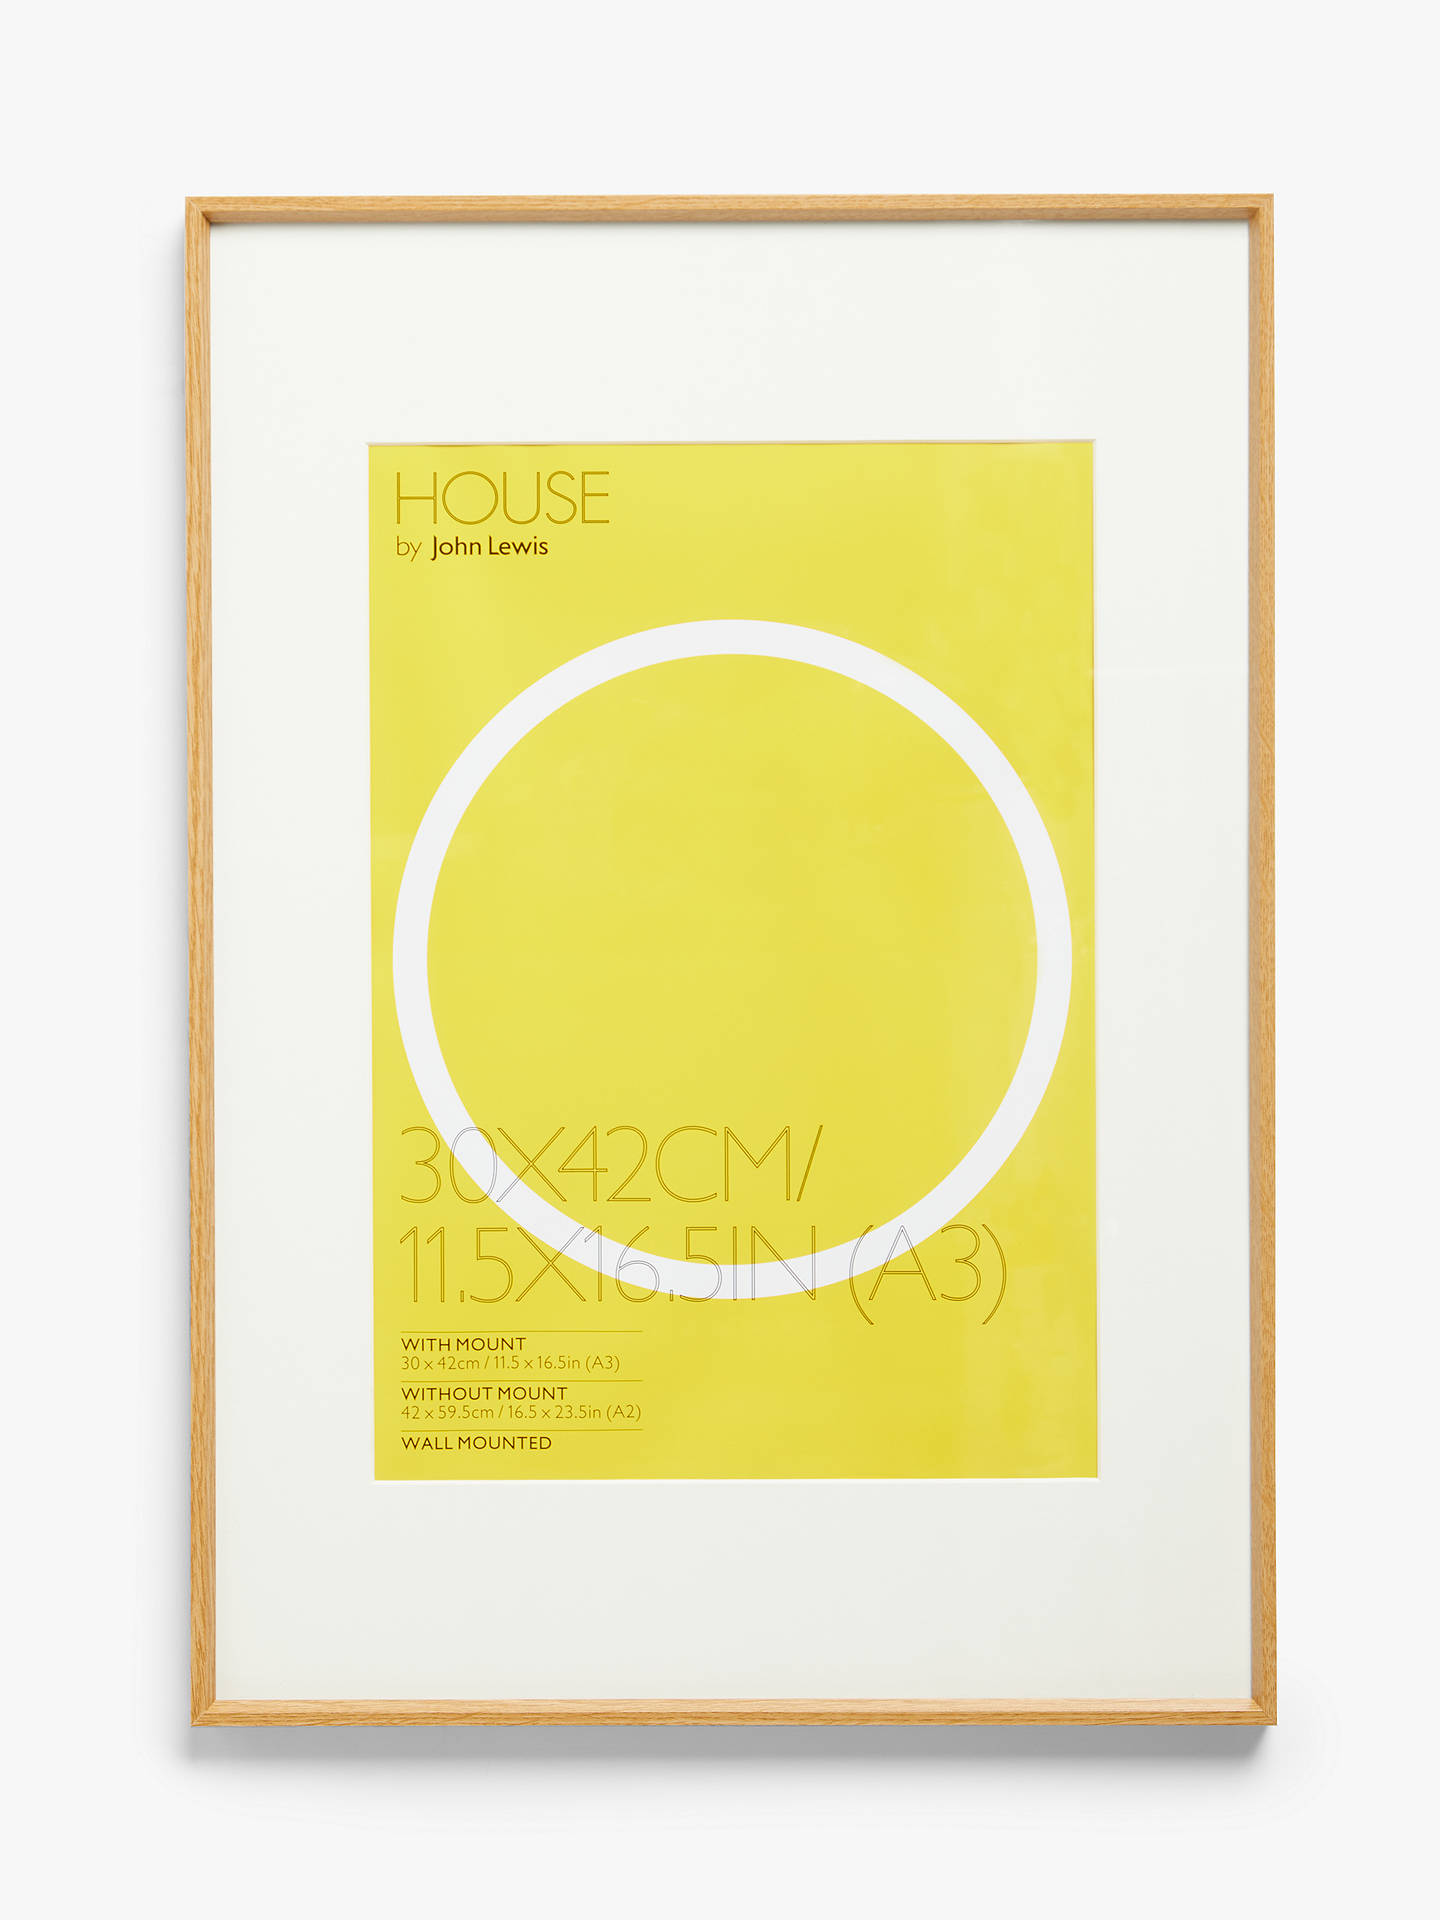 Buy House by John Lewis Aluminium Poster Frame & Mount, Oak Effect A3 (29 x 42cm) Online at johnlewis.com